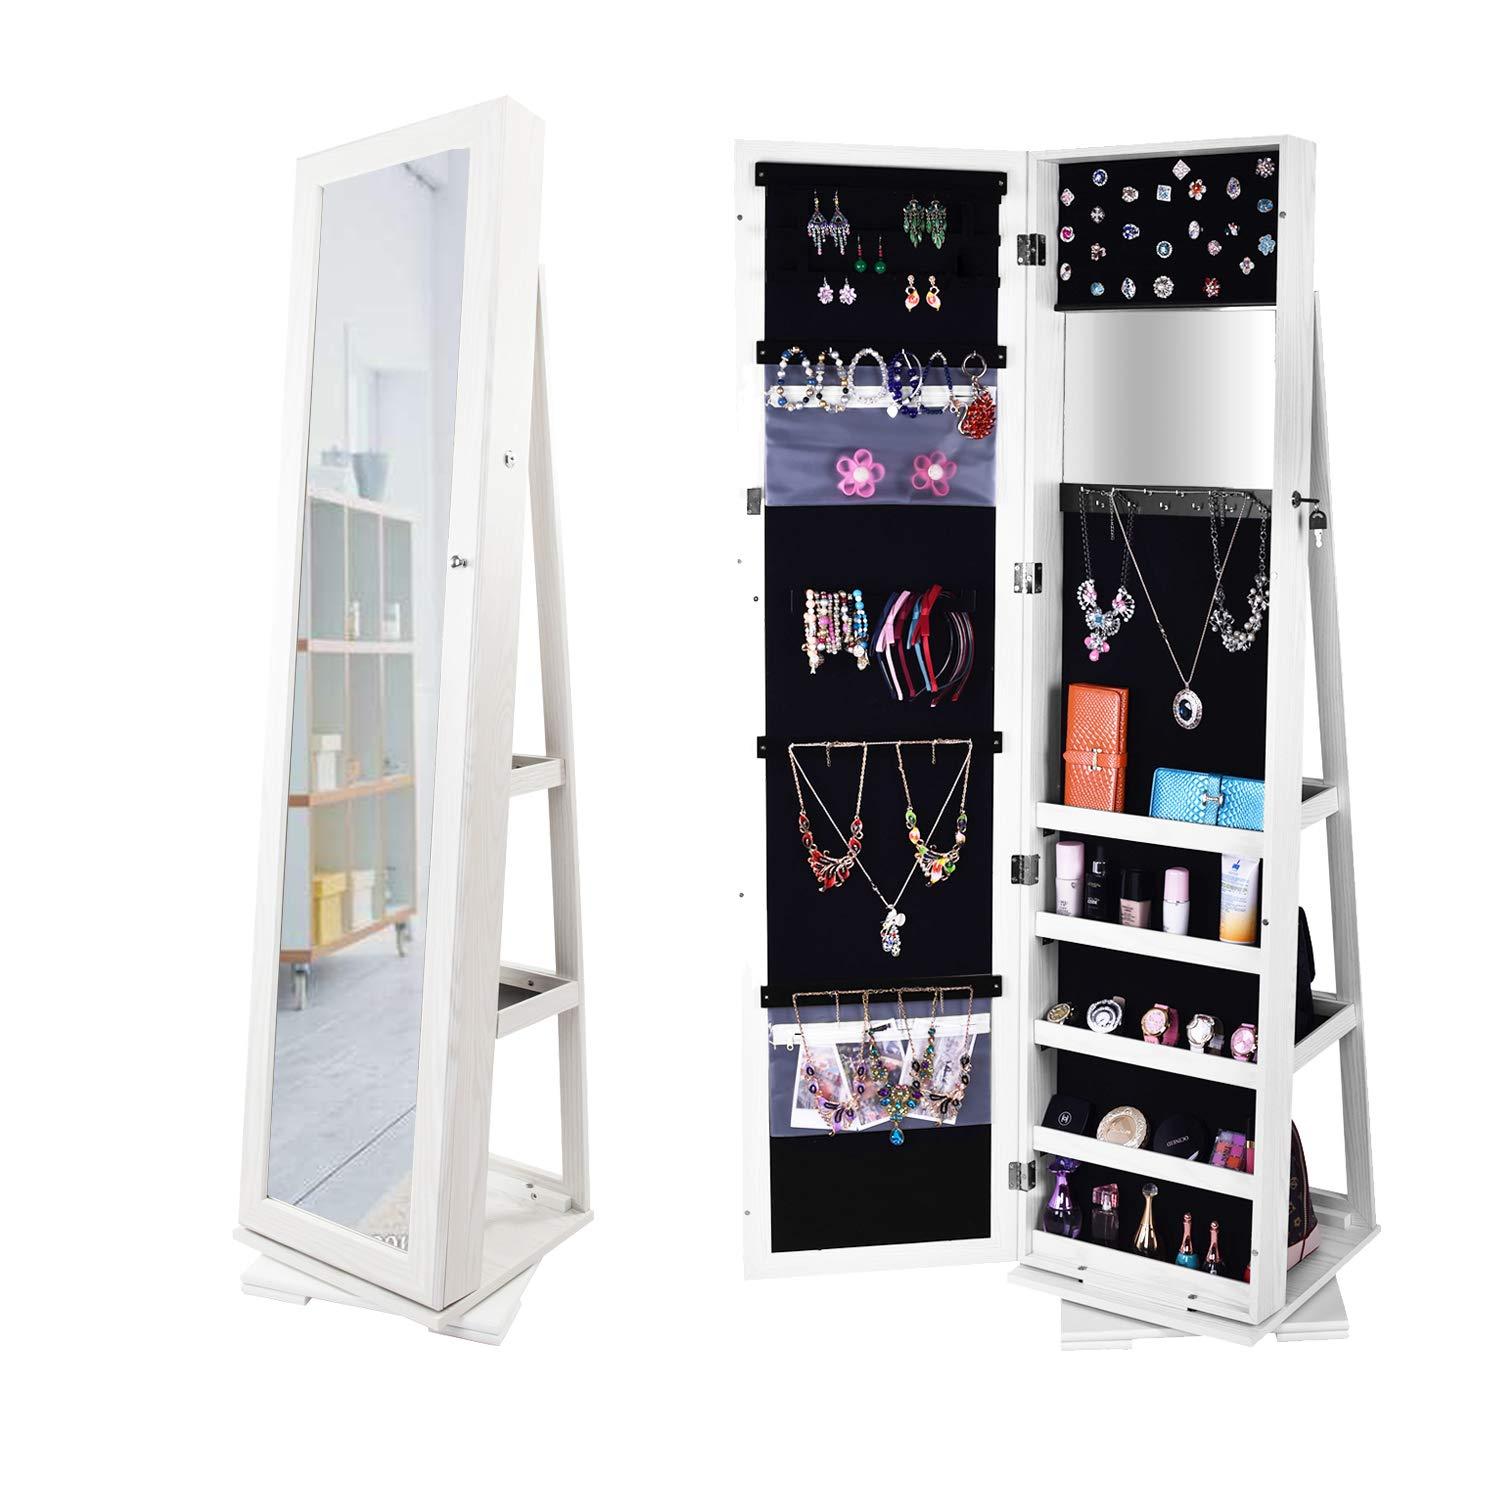 Bonnlo Jewelry Armoire 360 Degree Rotary Swivel Mirrored Cabinet,w/ 63'' H Full Length Mirror Lockable Decorate Closet Makeup Organizer,Floor Bedroom Solid Freestanding,New Year Gift by Bonnlo